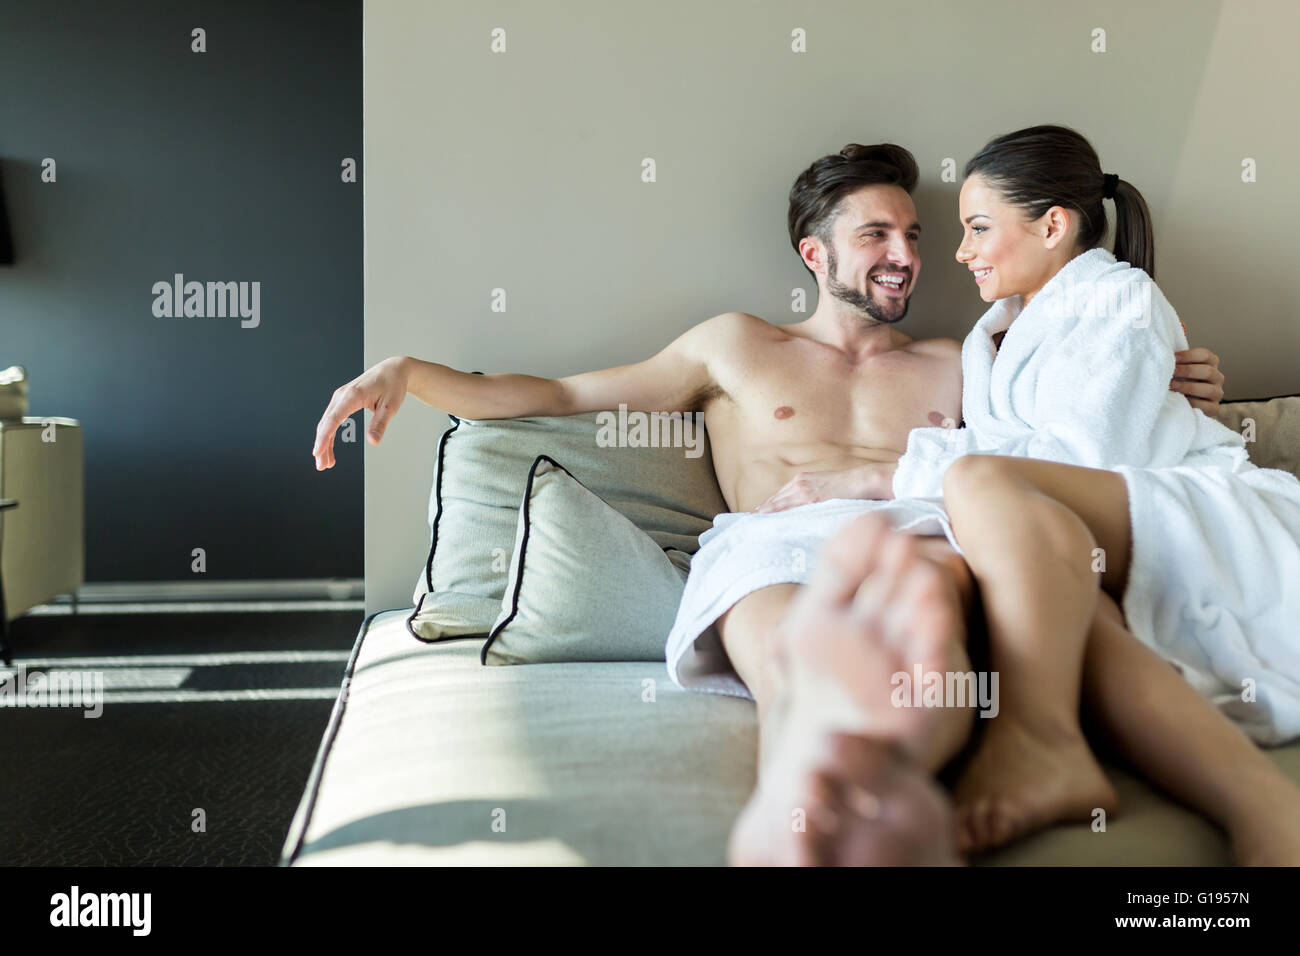 Lovely couple relaxing at a wellness center, laying in a rob and towel - Stock Image